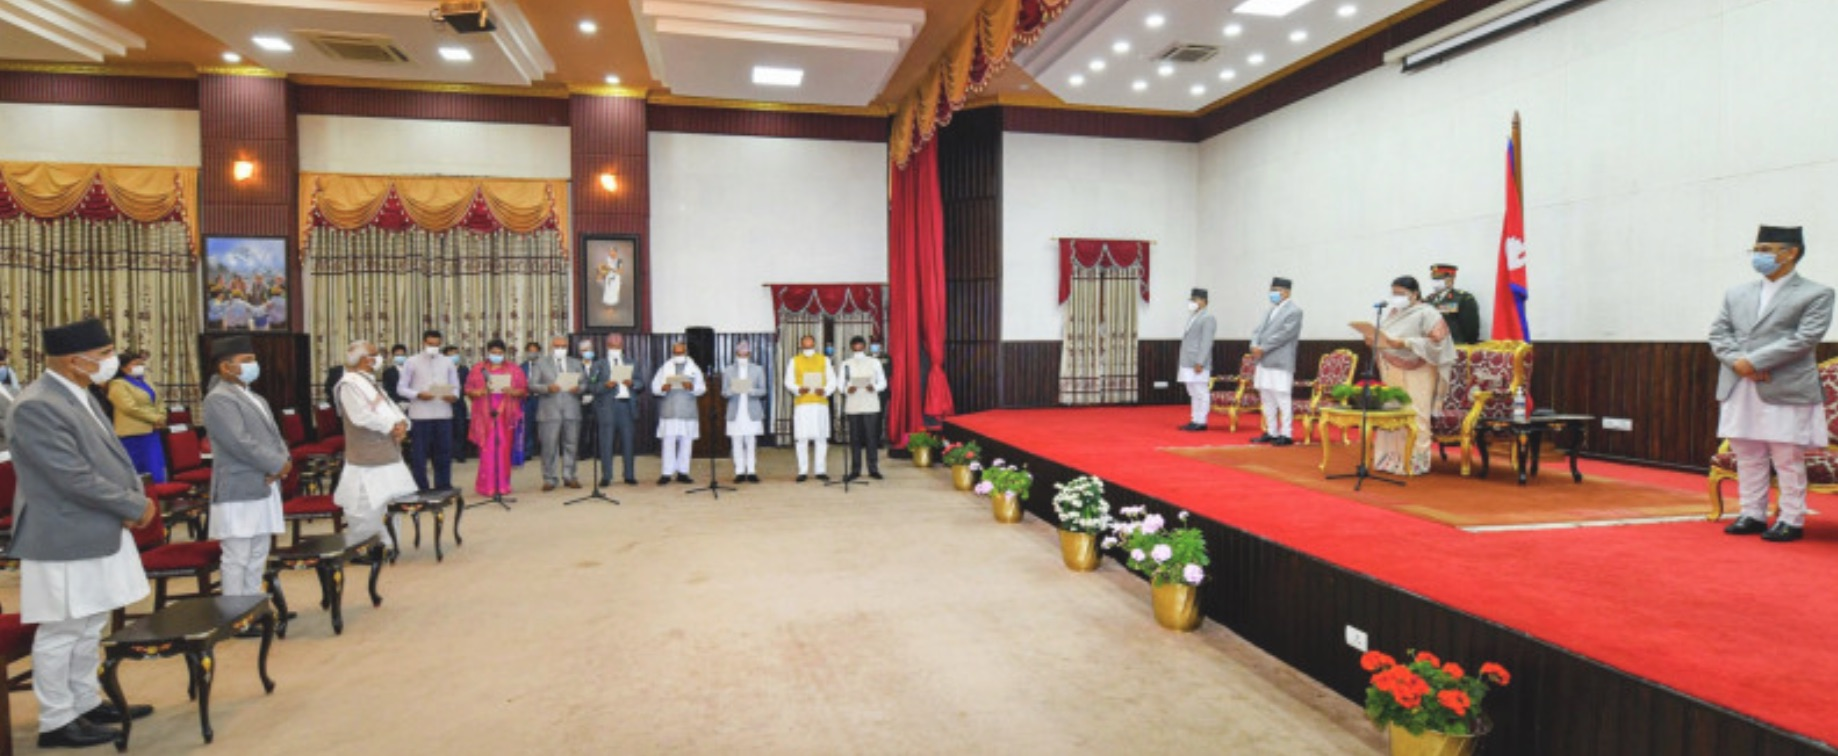 Nepal government reshuffle during pandemic